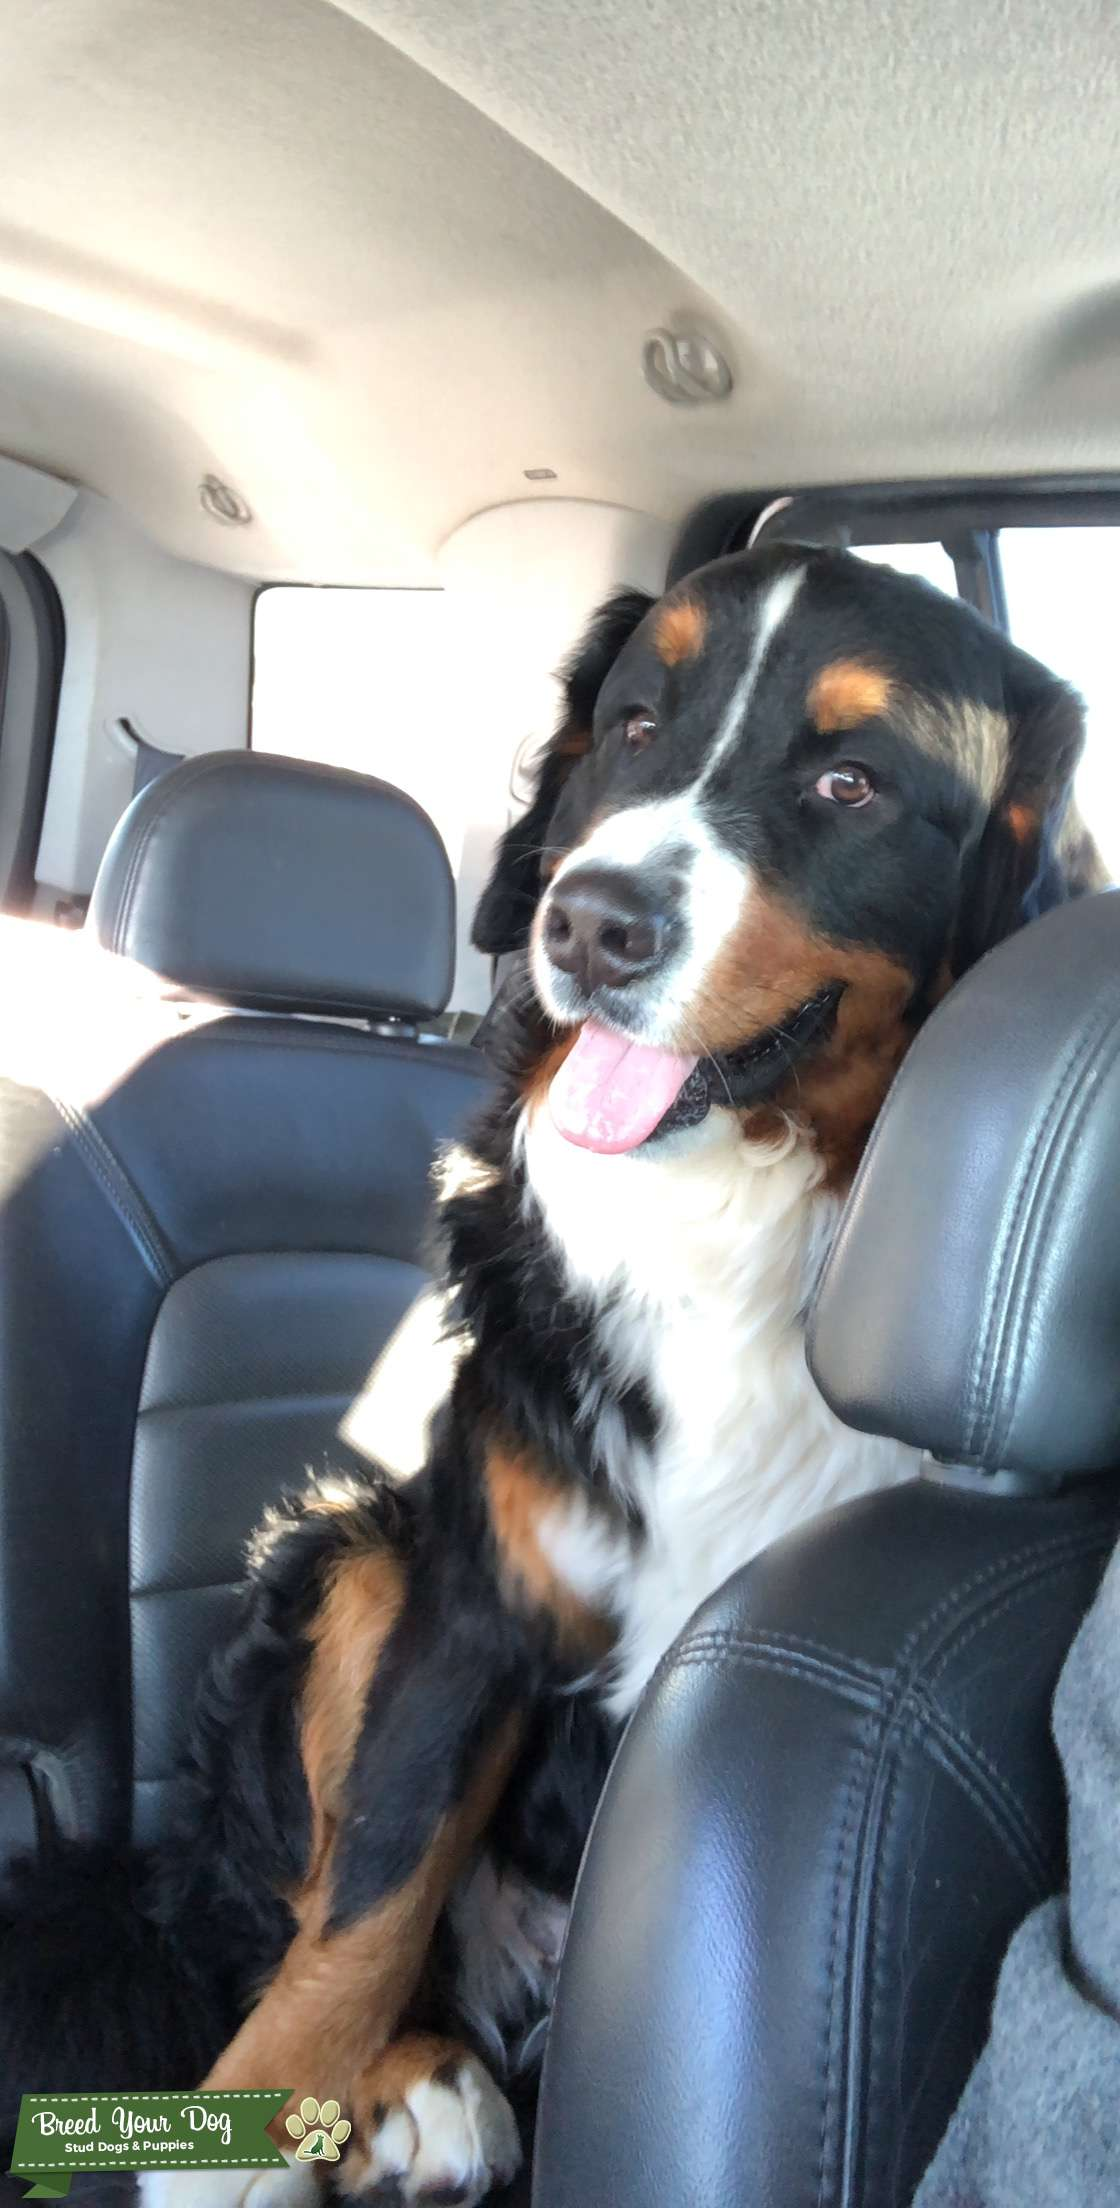 Stud Burmese Mountain dog  Listing Image Big